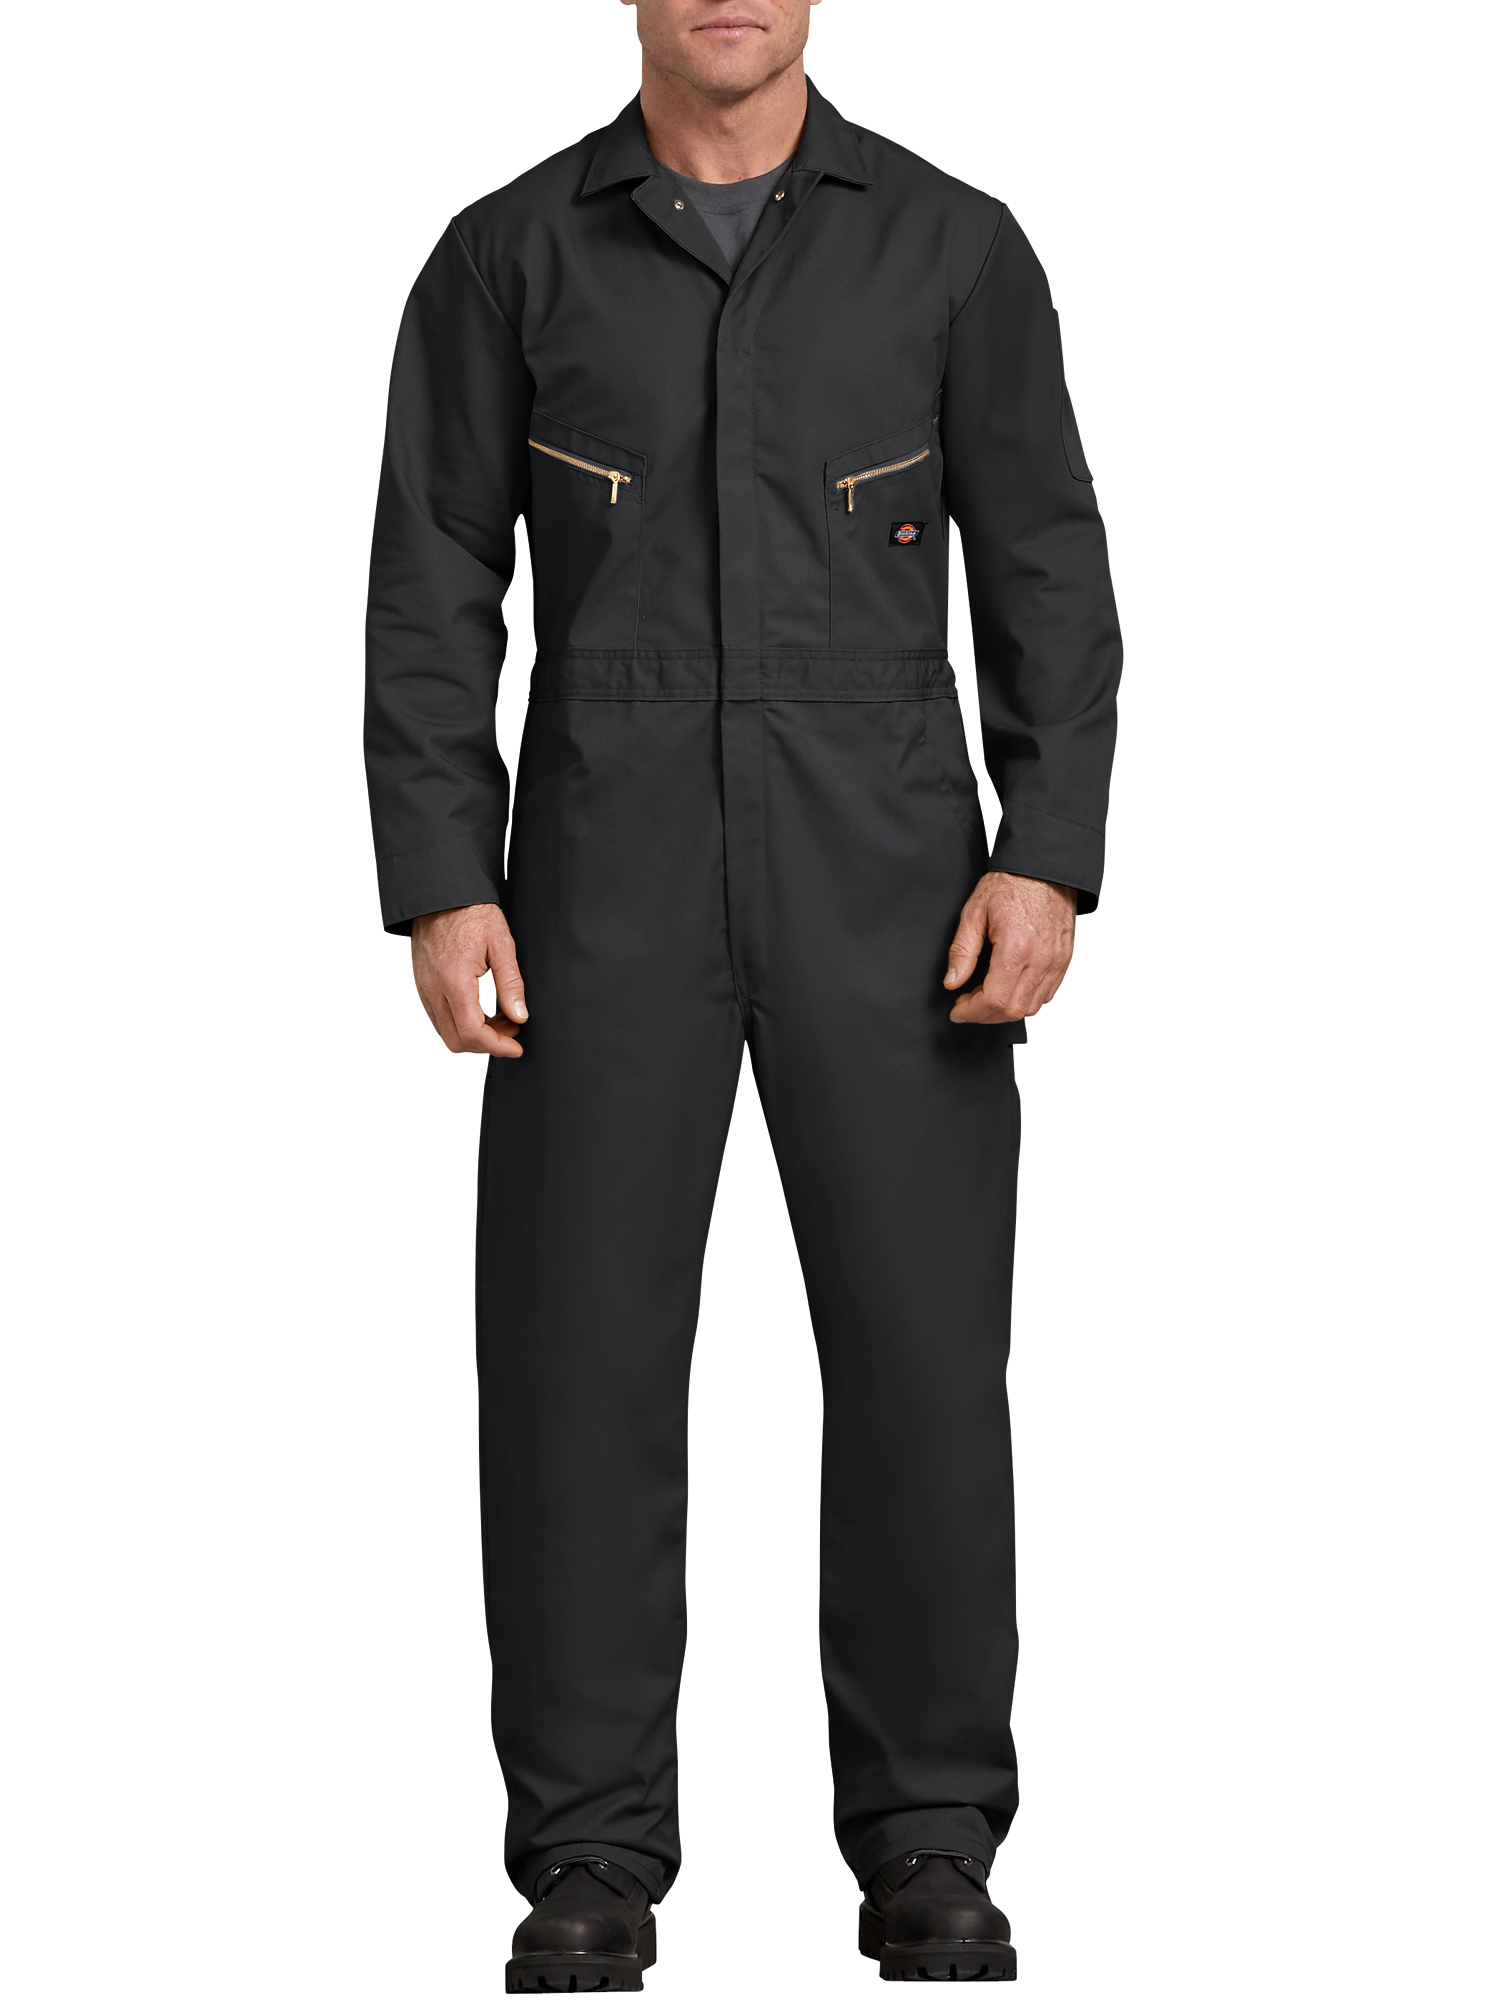 Men's Long Sleeve Deluxe Blended Twill Coverall by Dickies